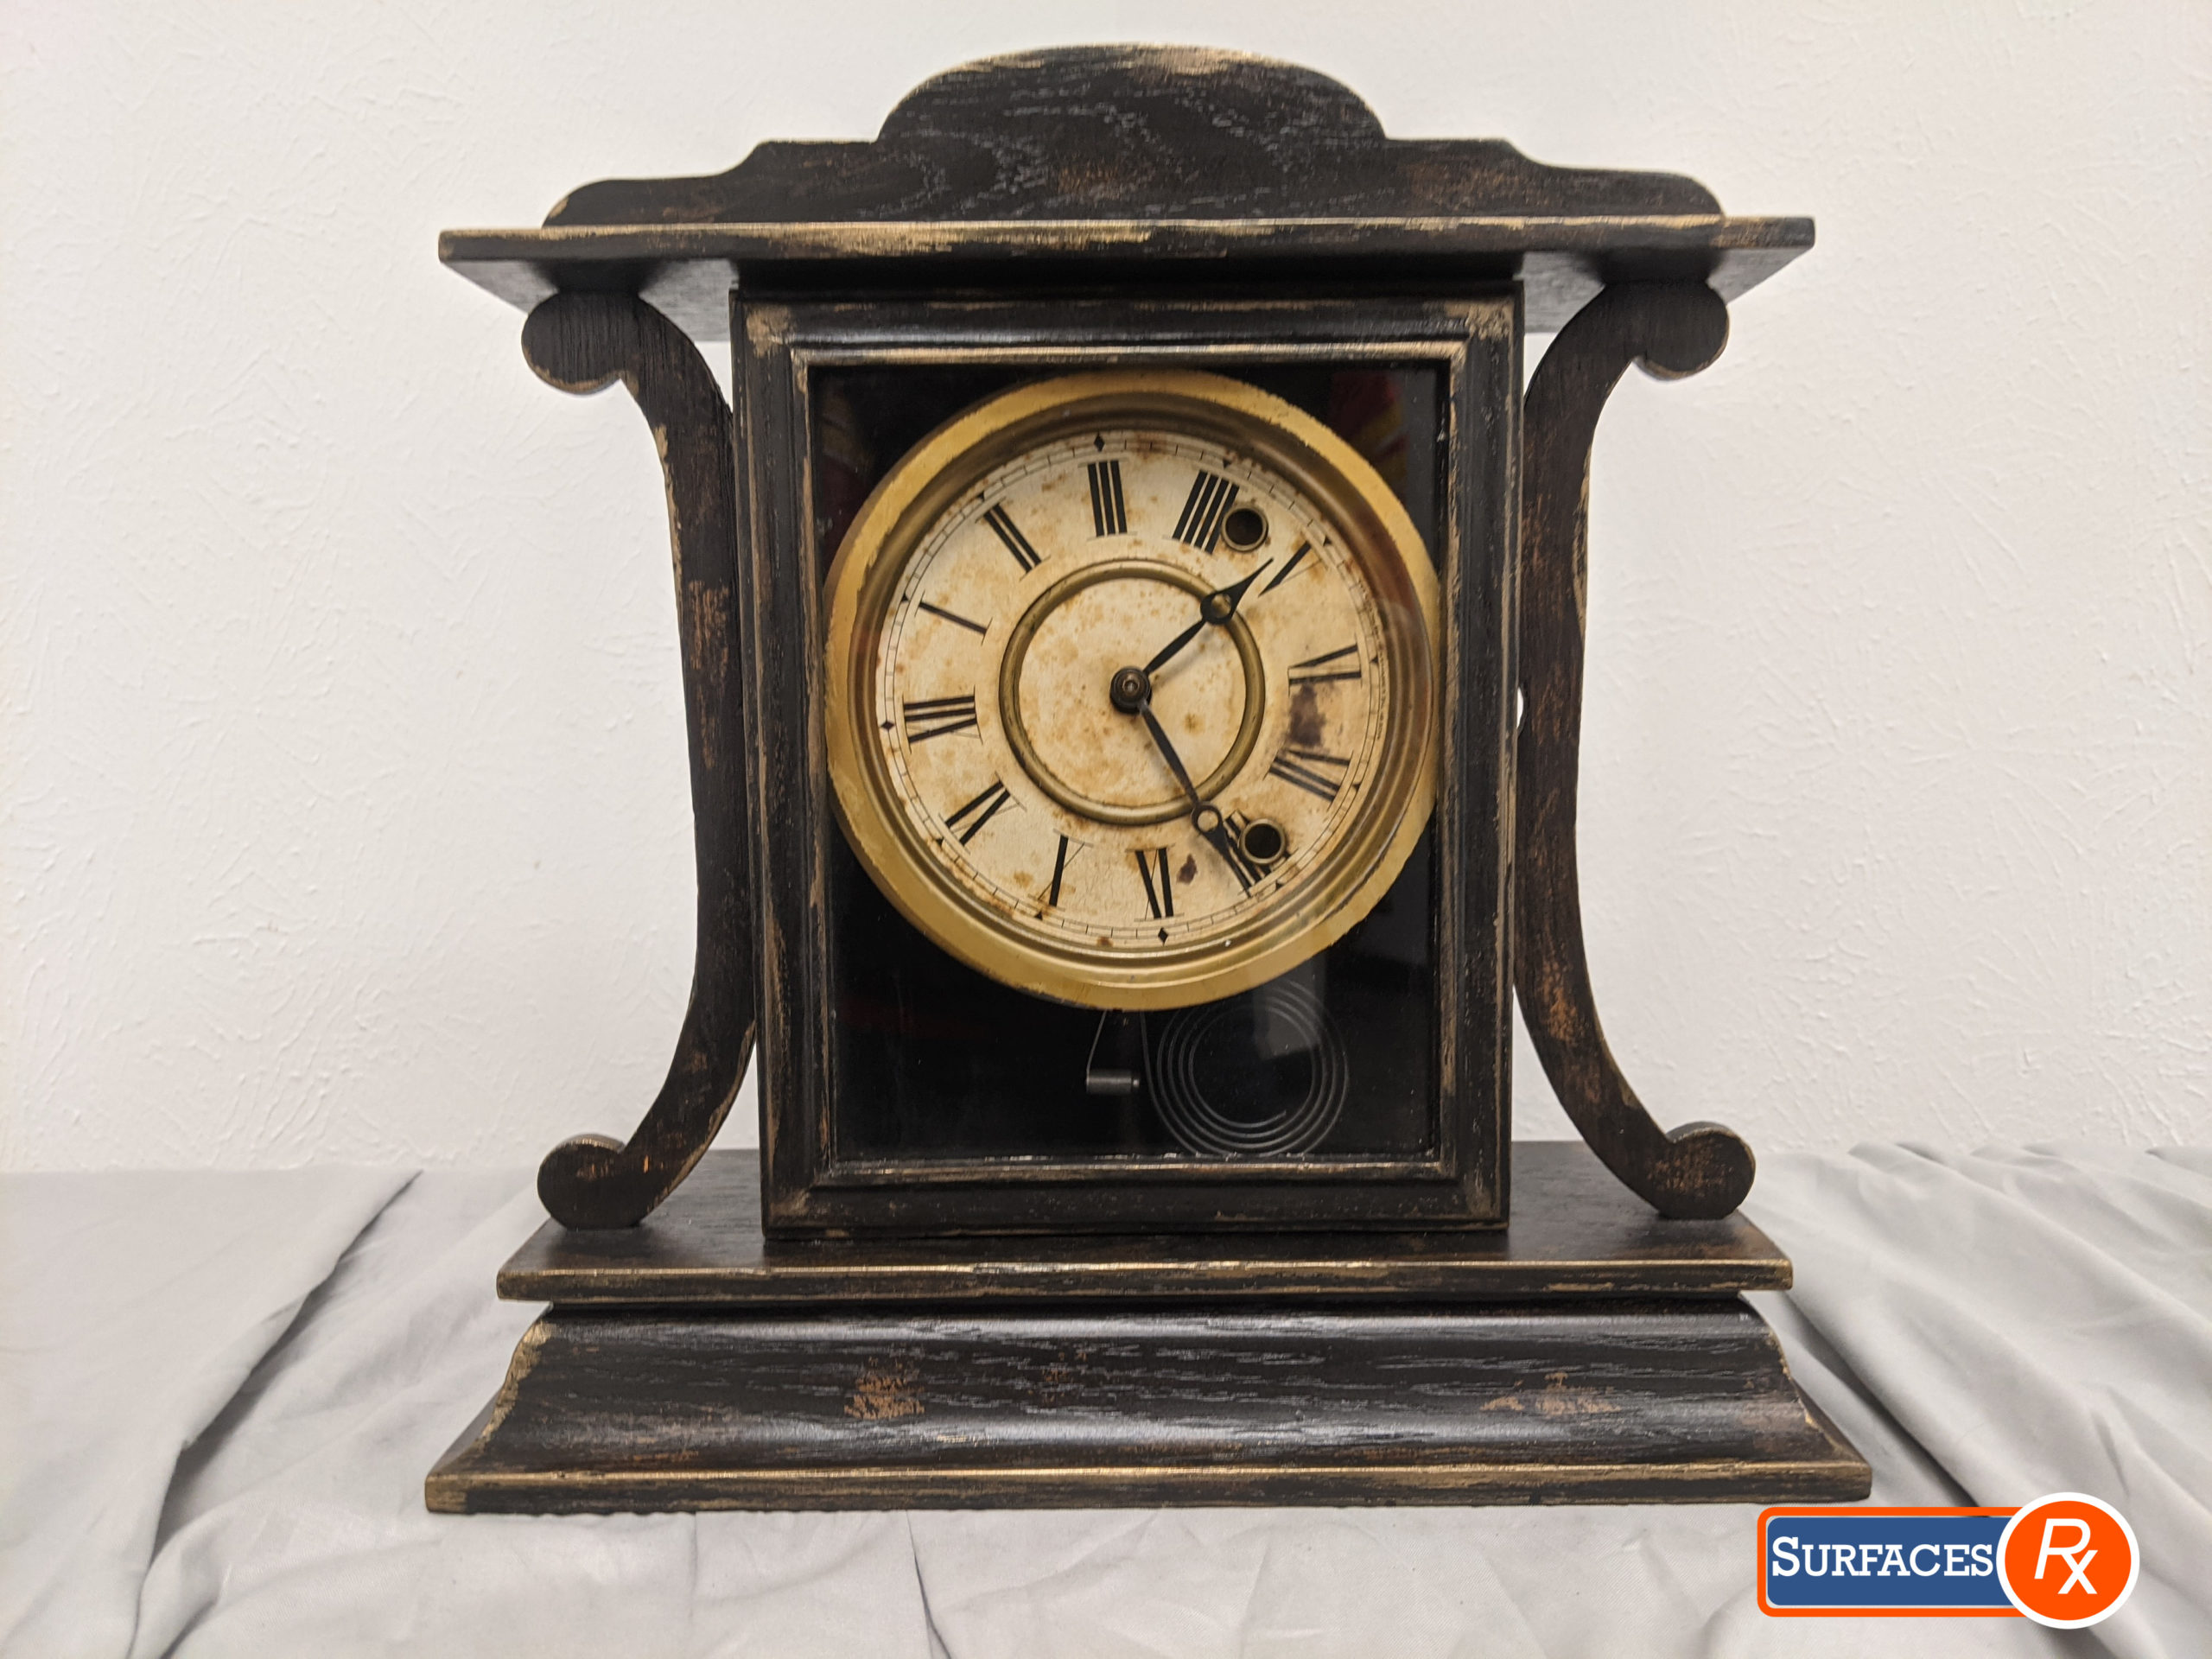 Faux Finished Vintage Mantle Clock For Sale by Surfaces Rx, Dallas TX